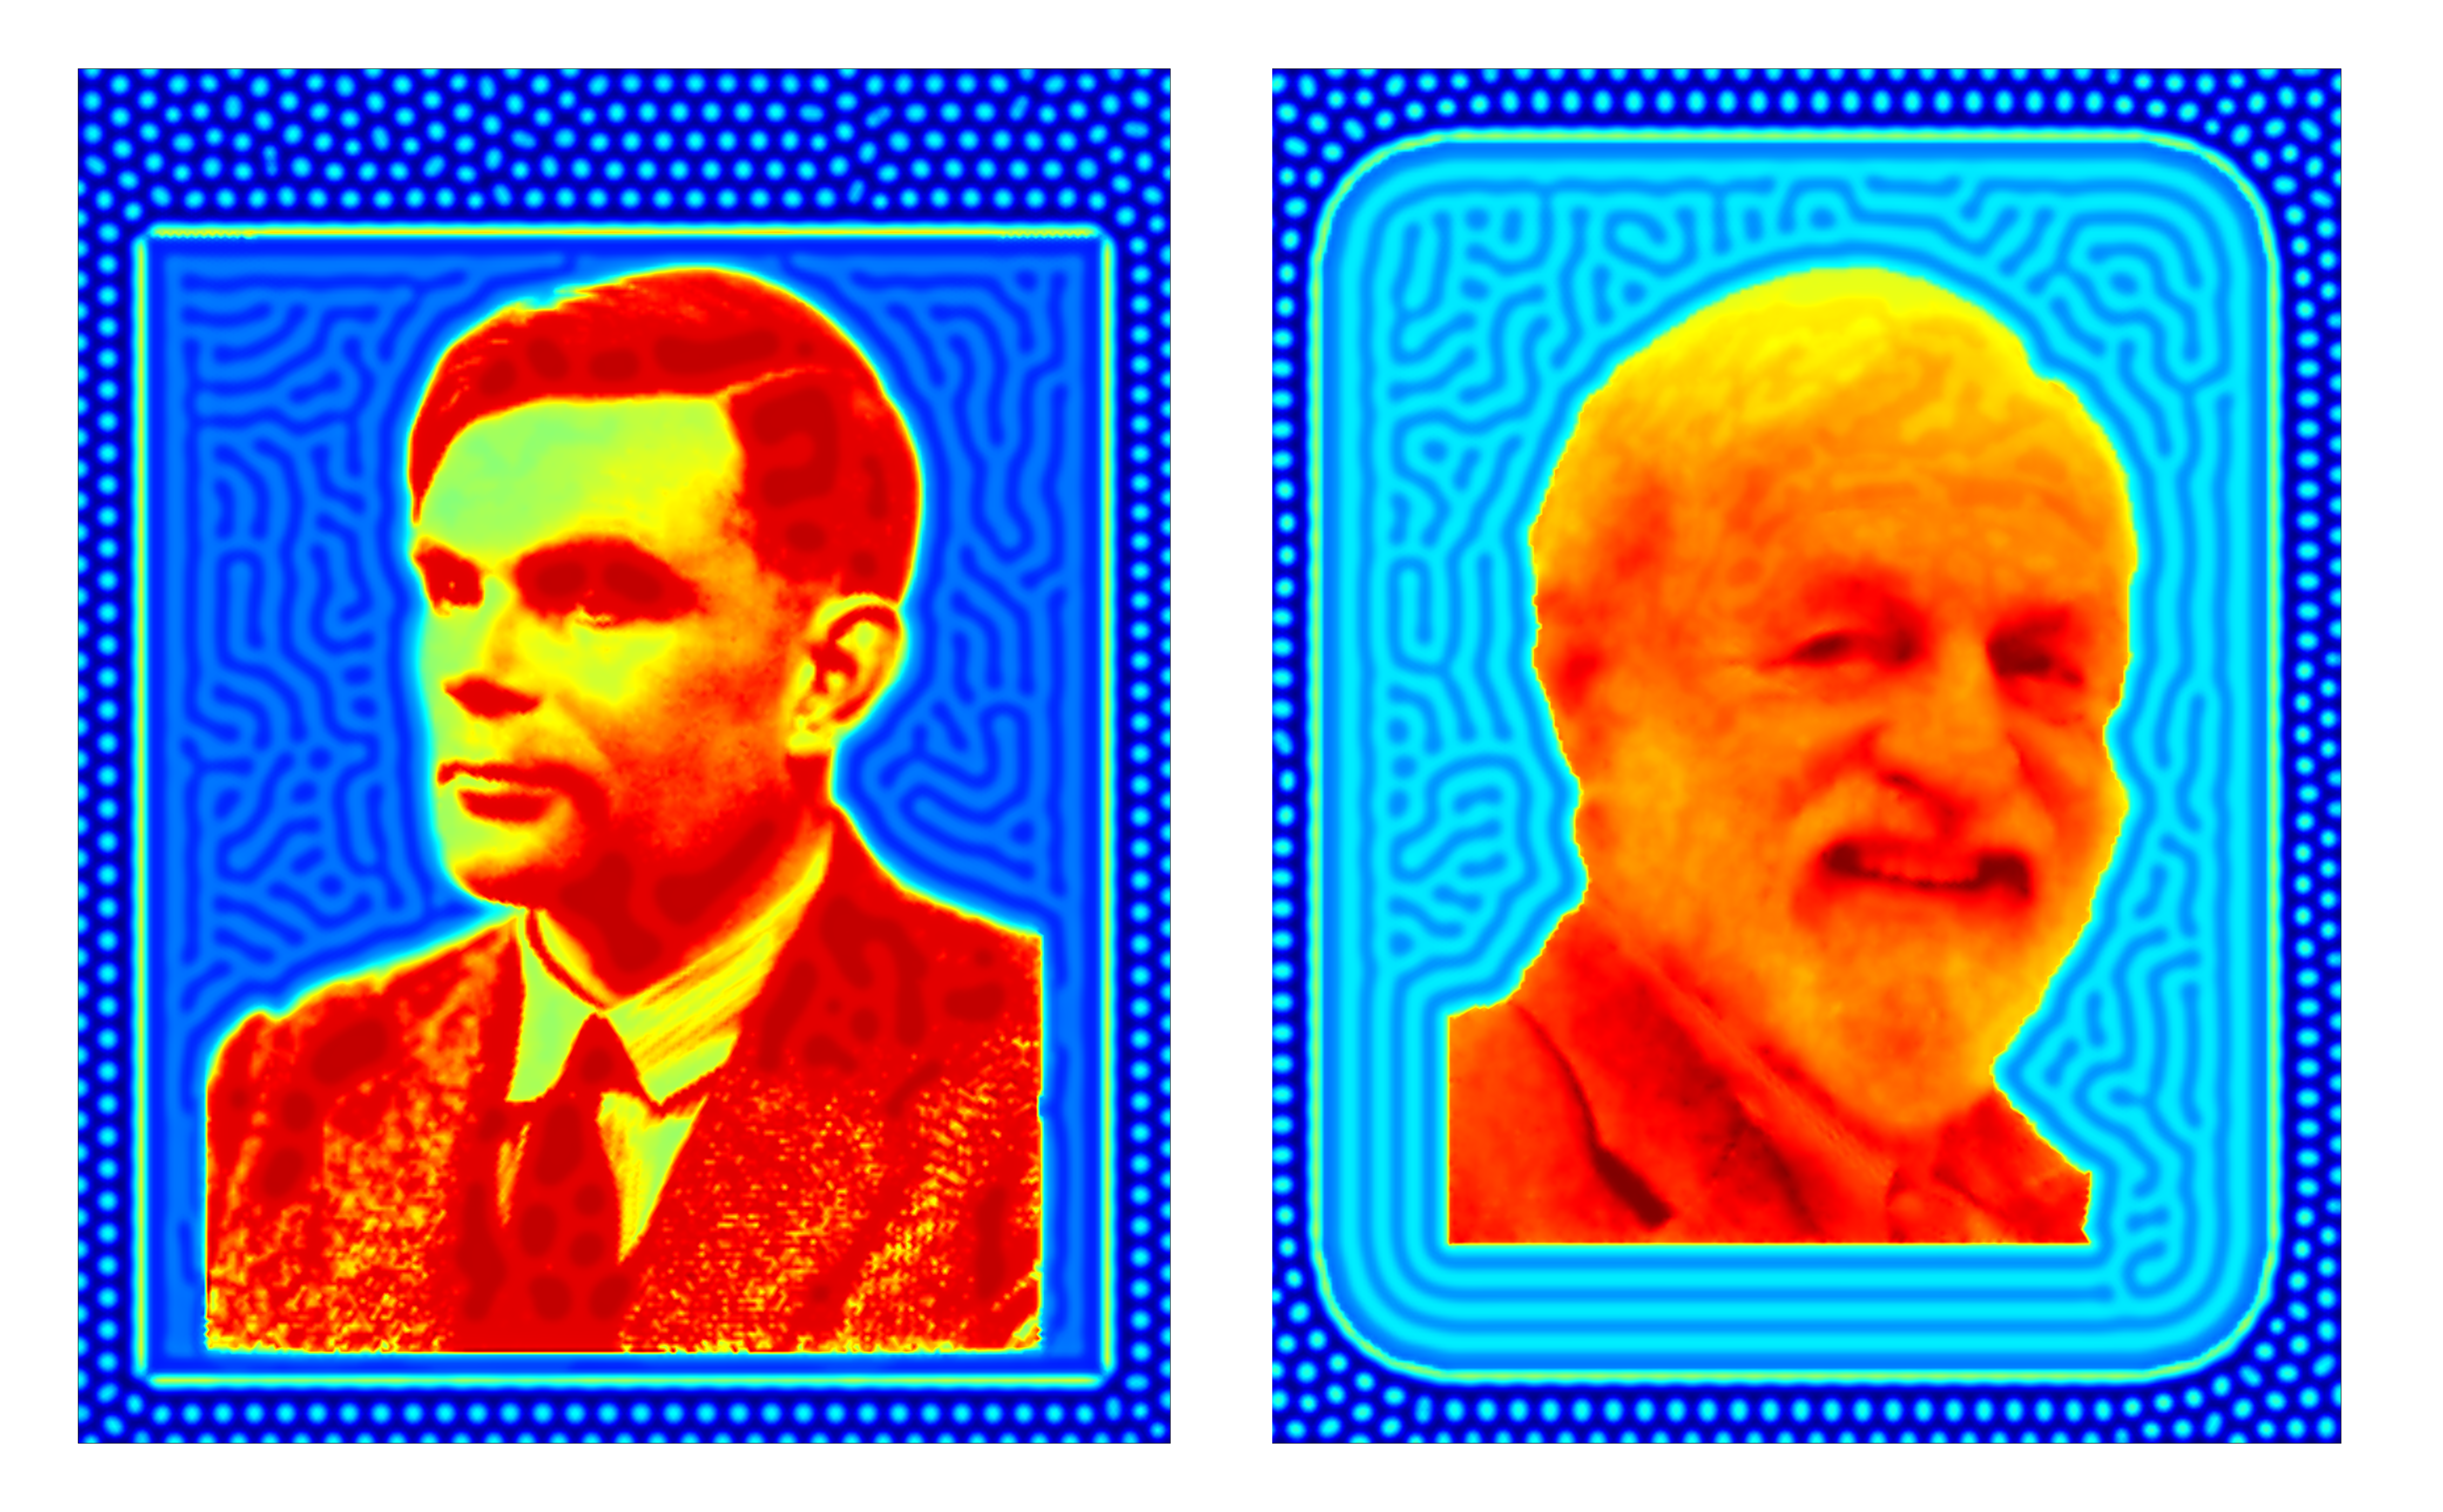 Faces of Alan Turing and James Murray created using Turing patterns